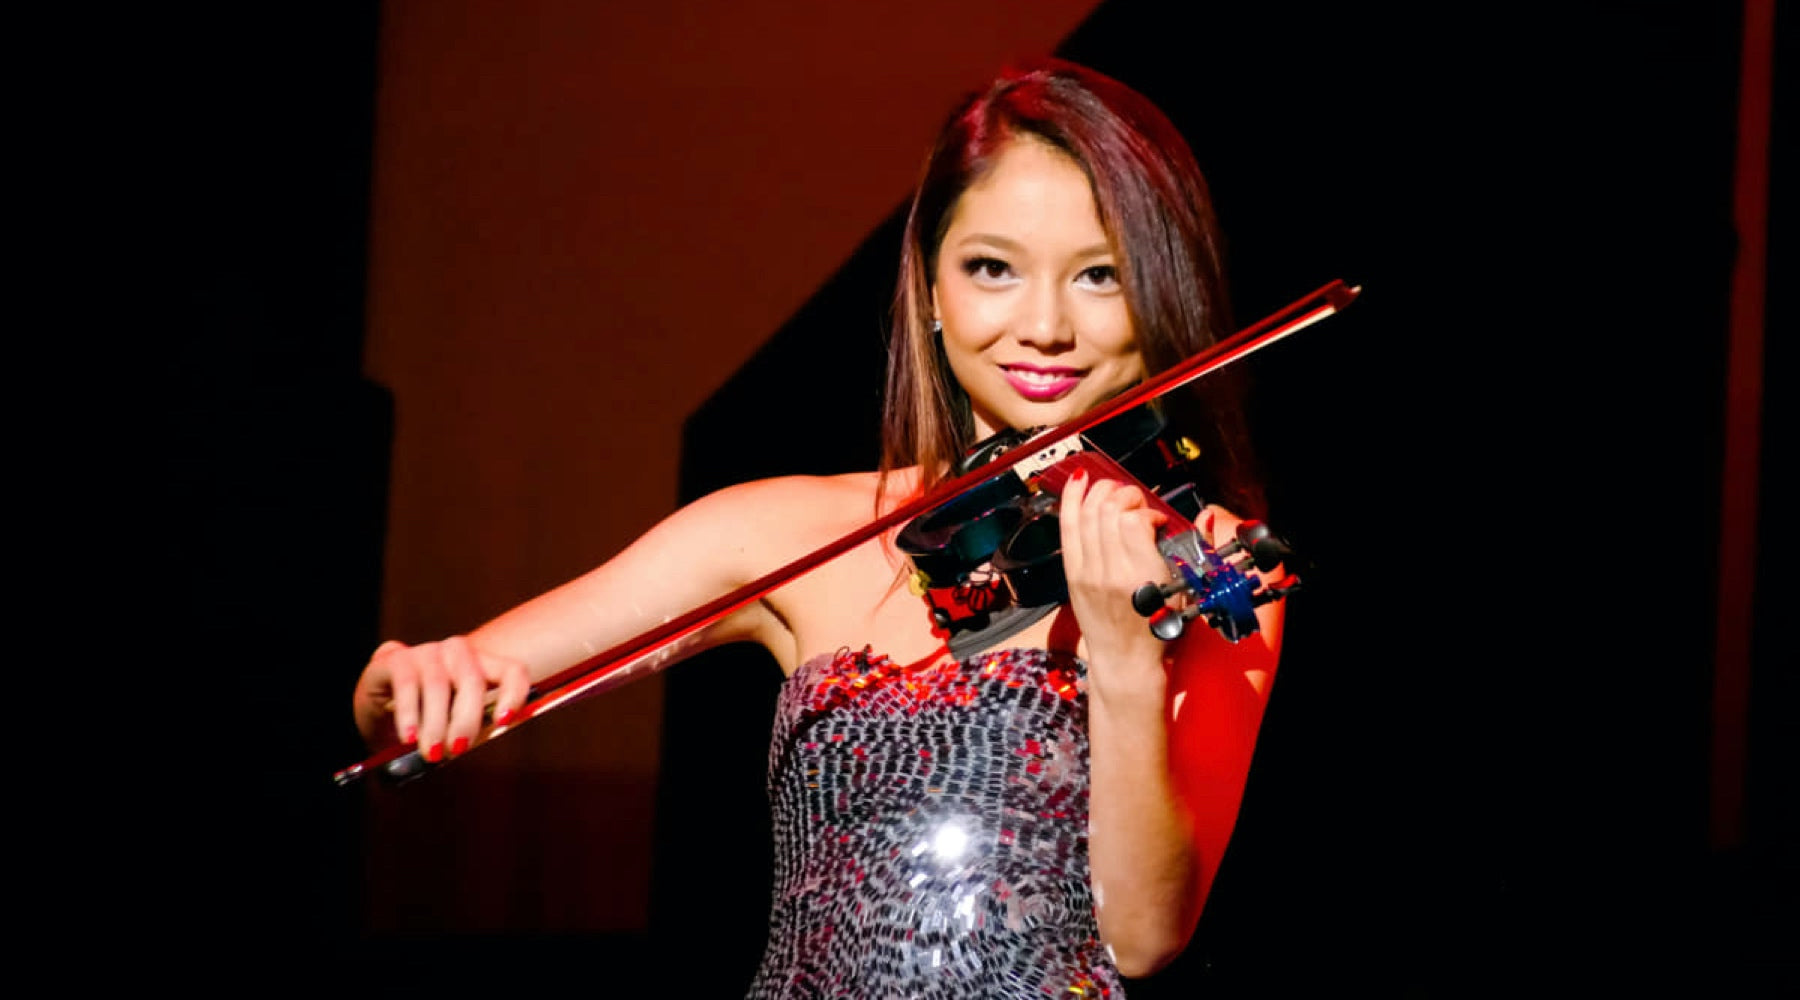 Xyla Foxlin plays the violin